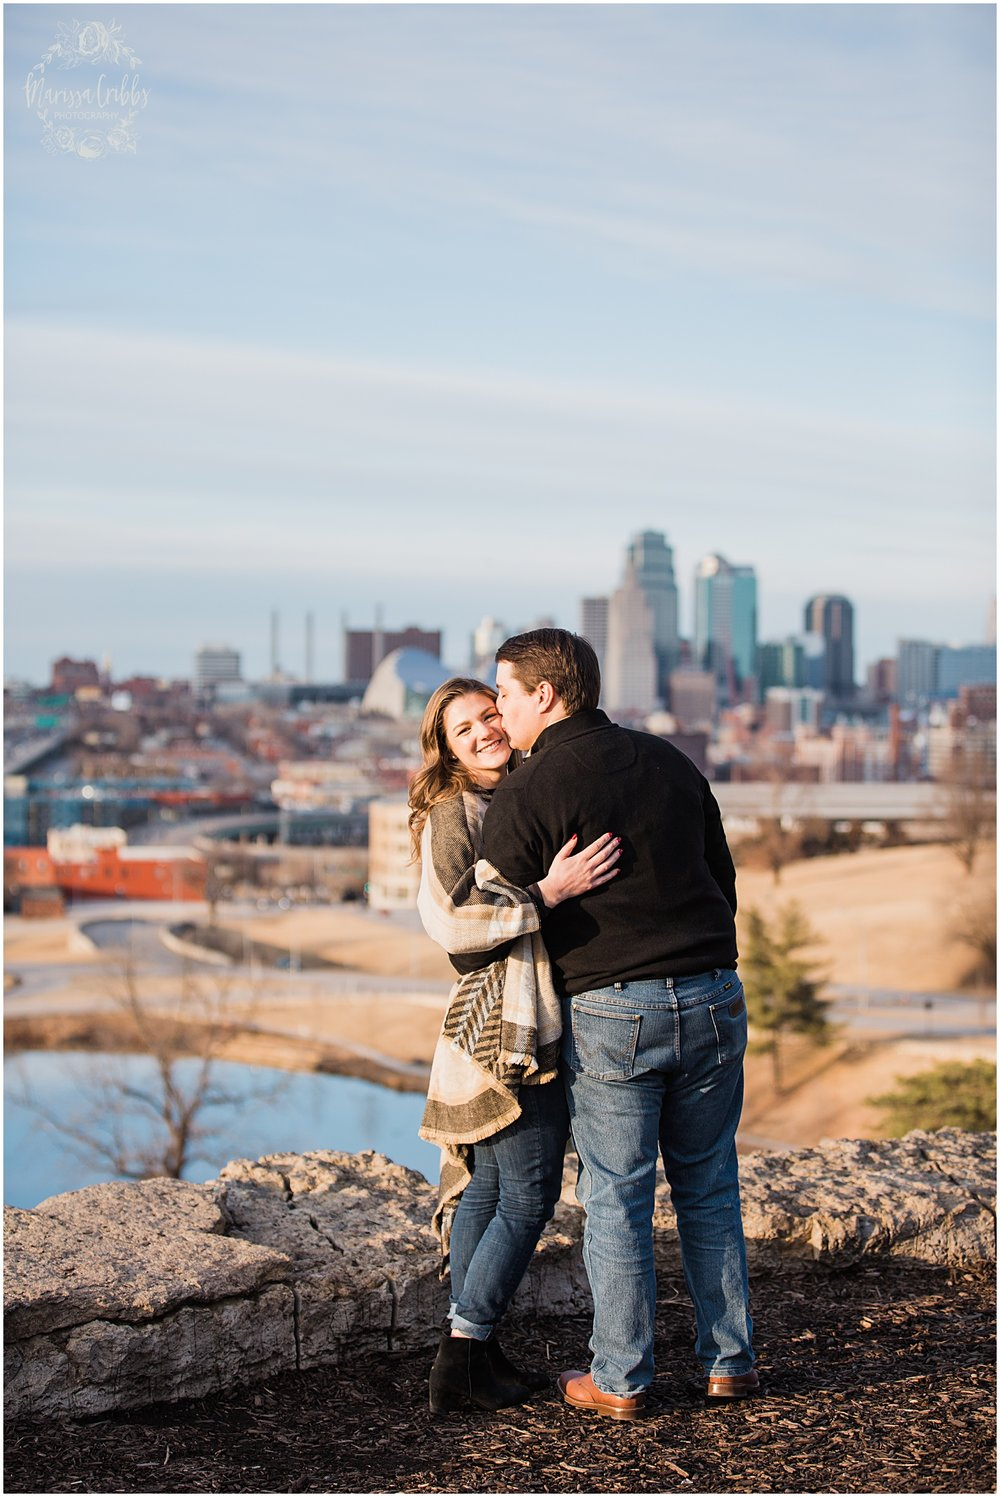 CAROLINE & JOE ENGAGEMENT FINAL | MARISSA CRIBBS PHOTOGRAPHY_4193.jpg